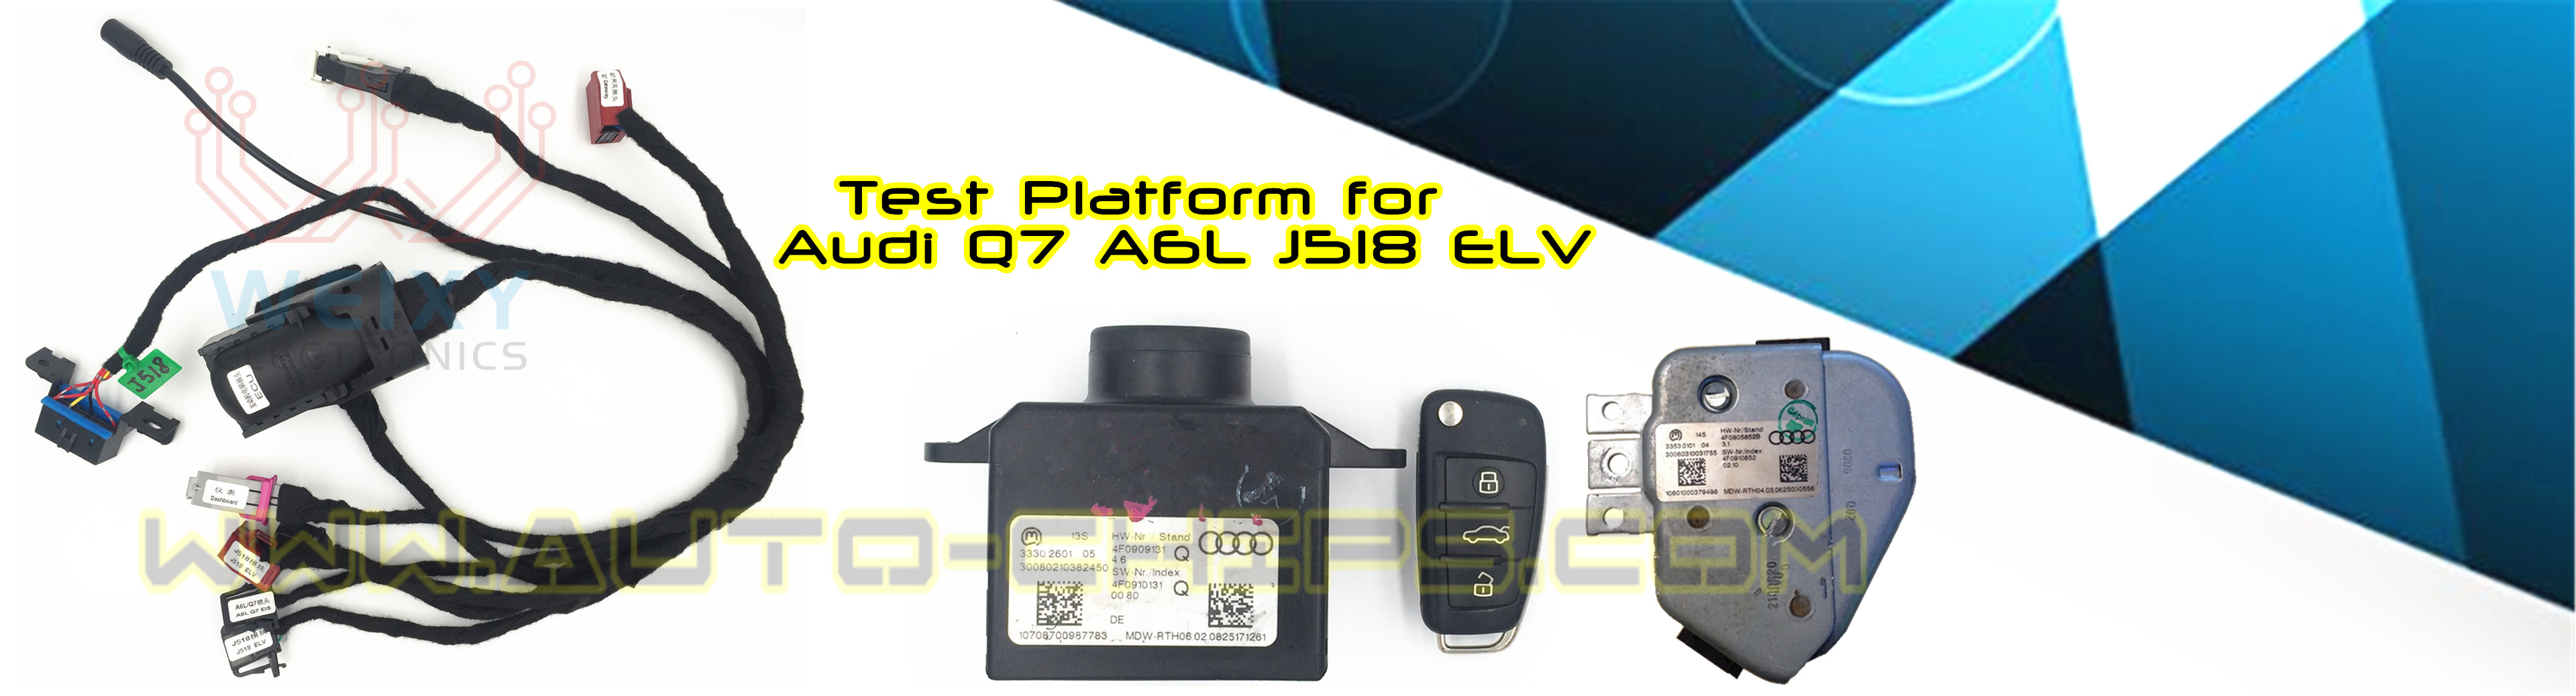 Test Platform for Audi Q7 A6L J518 ELV